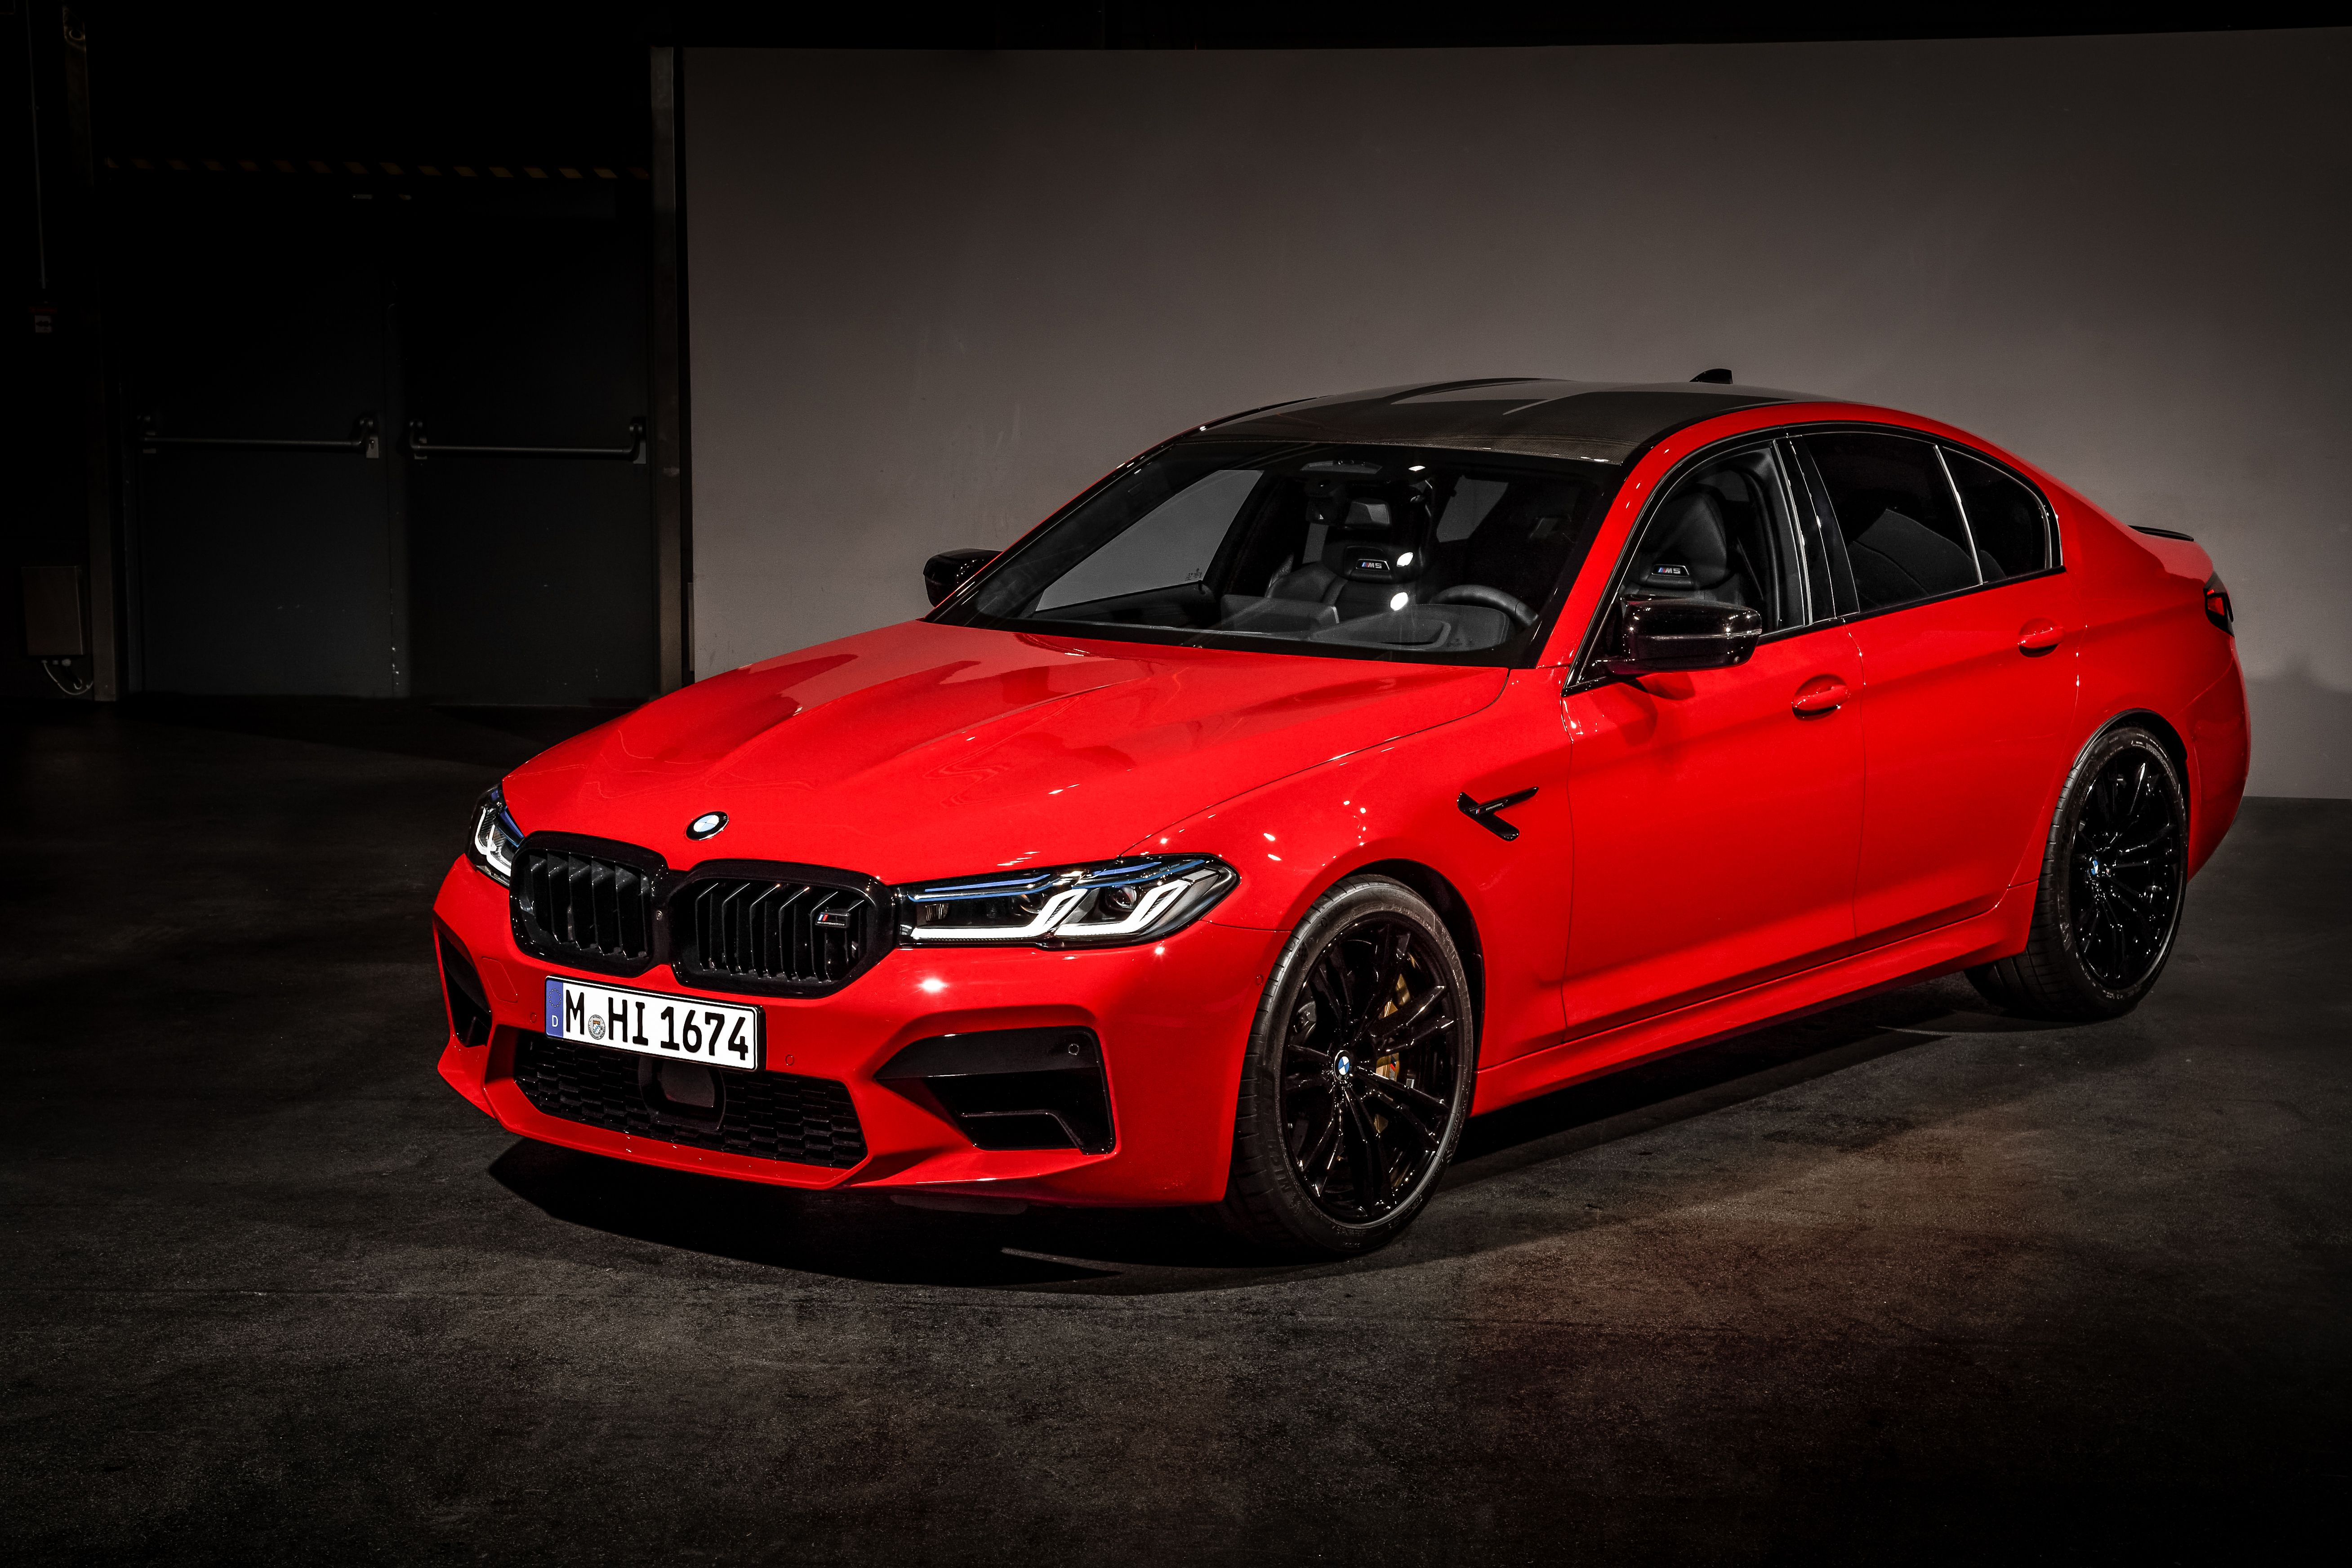 The 2021 Bmw M5 Cs Will See A Serious Power Increase But You Might Not Like The Price Top Speed Bmw M5 Bmw Bmw Red